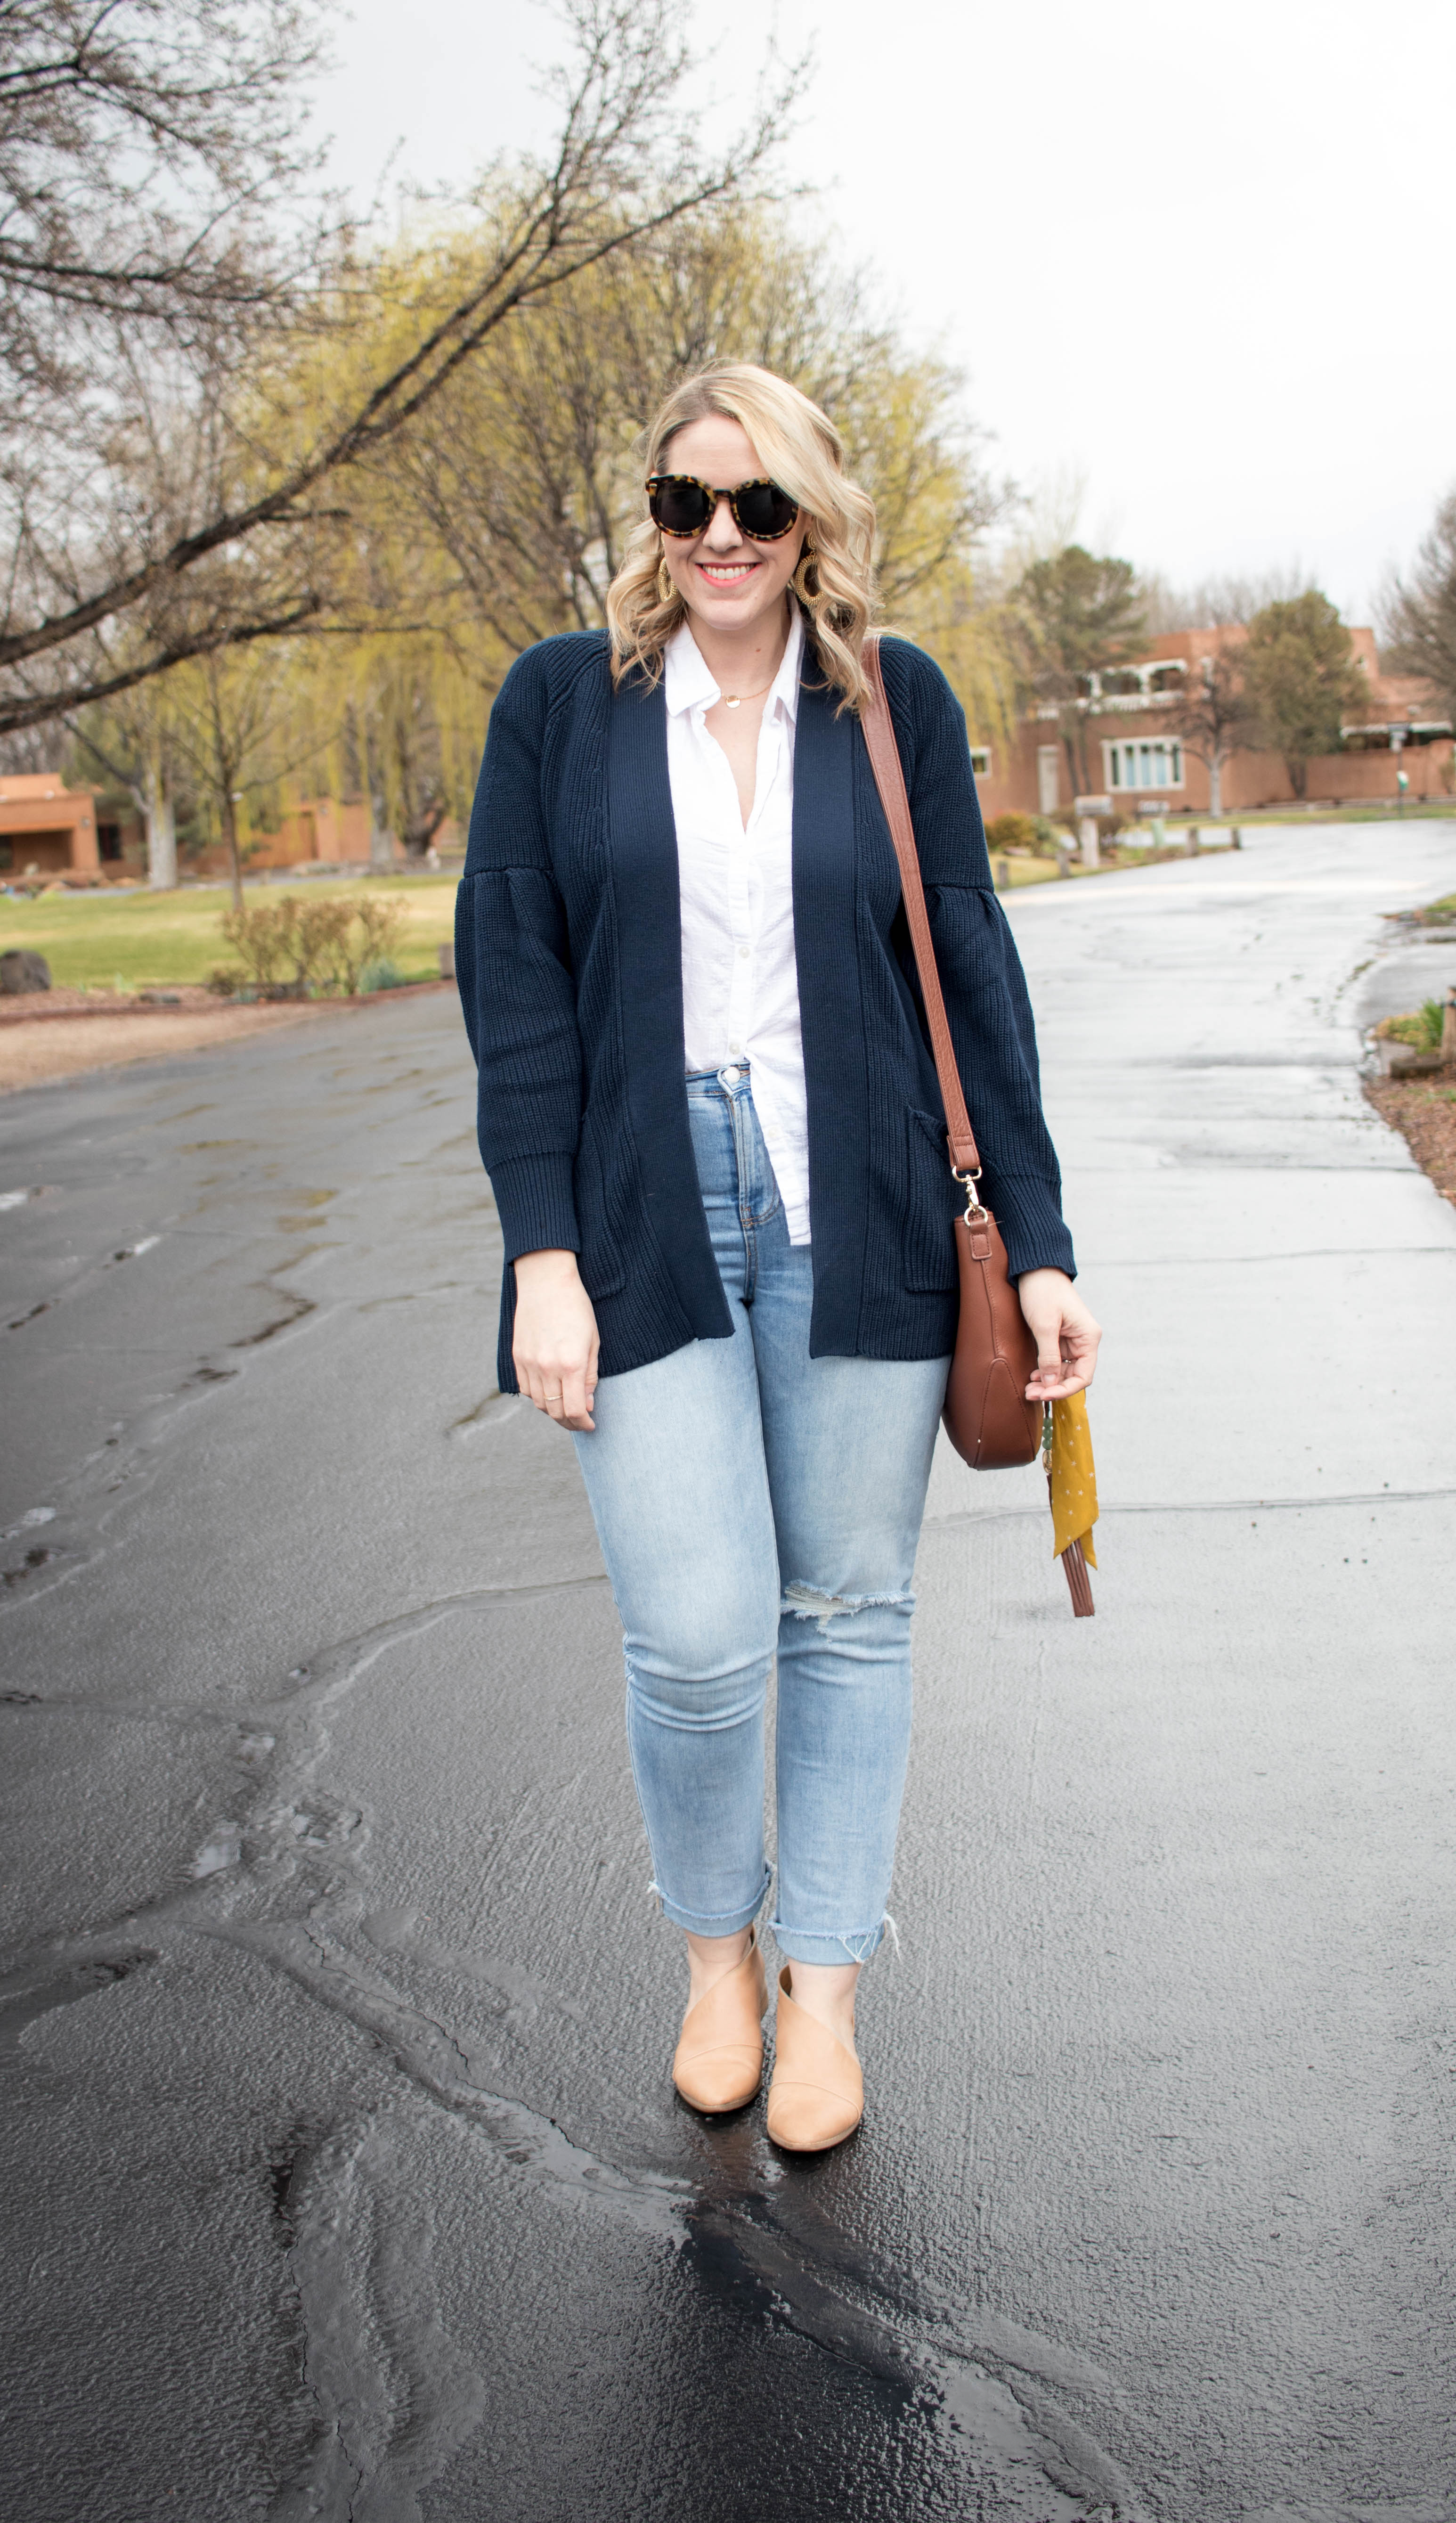 winter to spring layers transitional outfit #springstyle #styleblogger #theweeklystyleedit